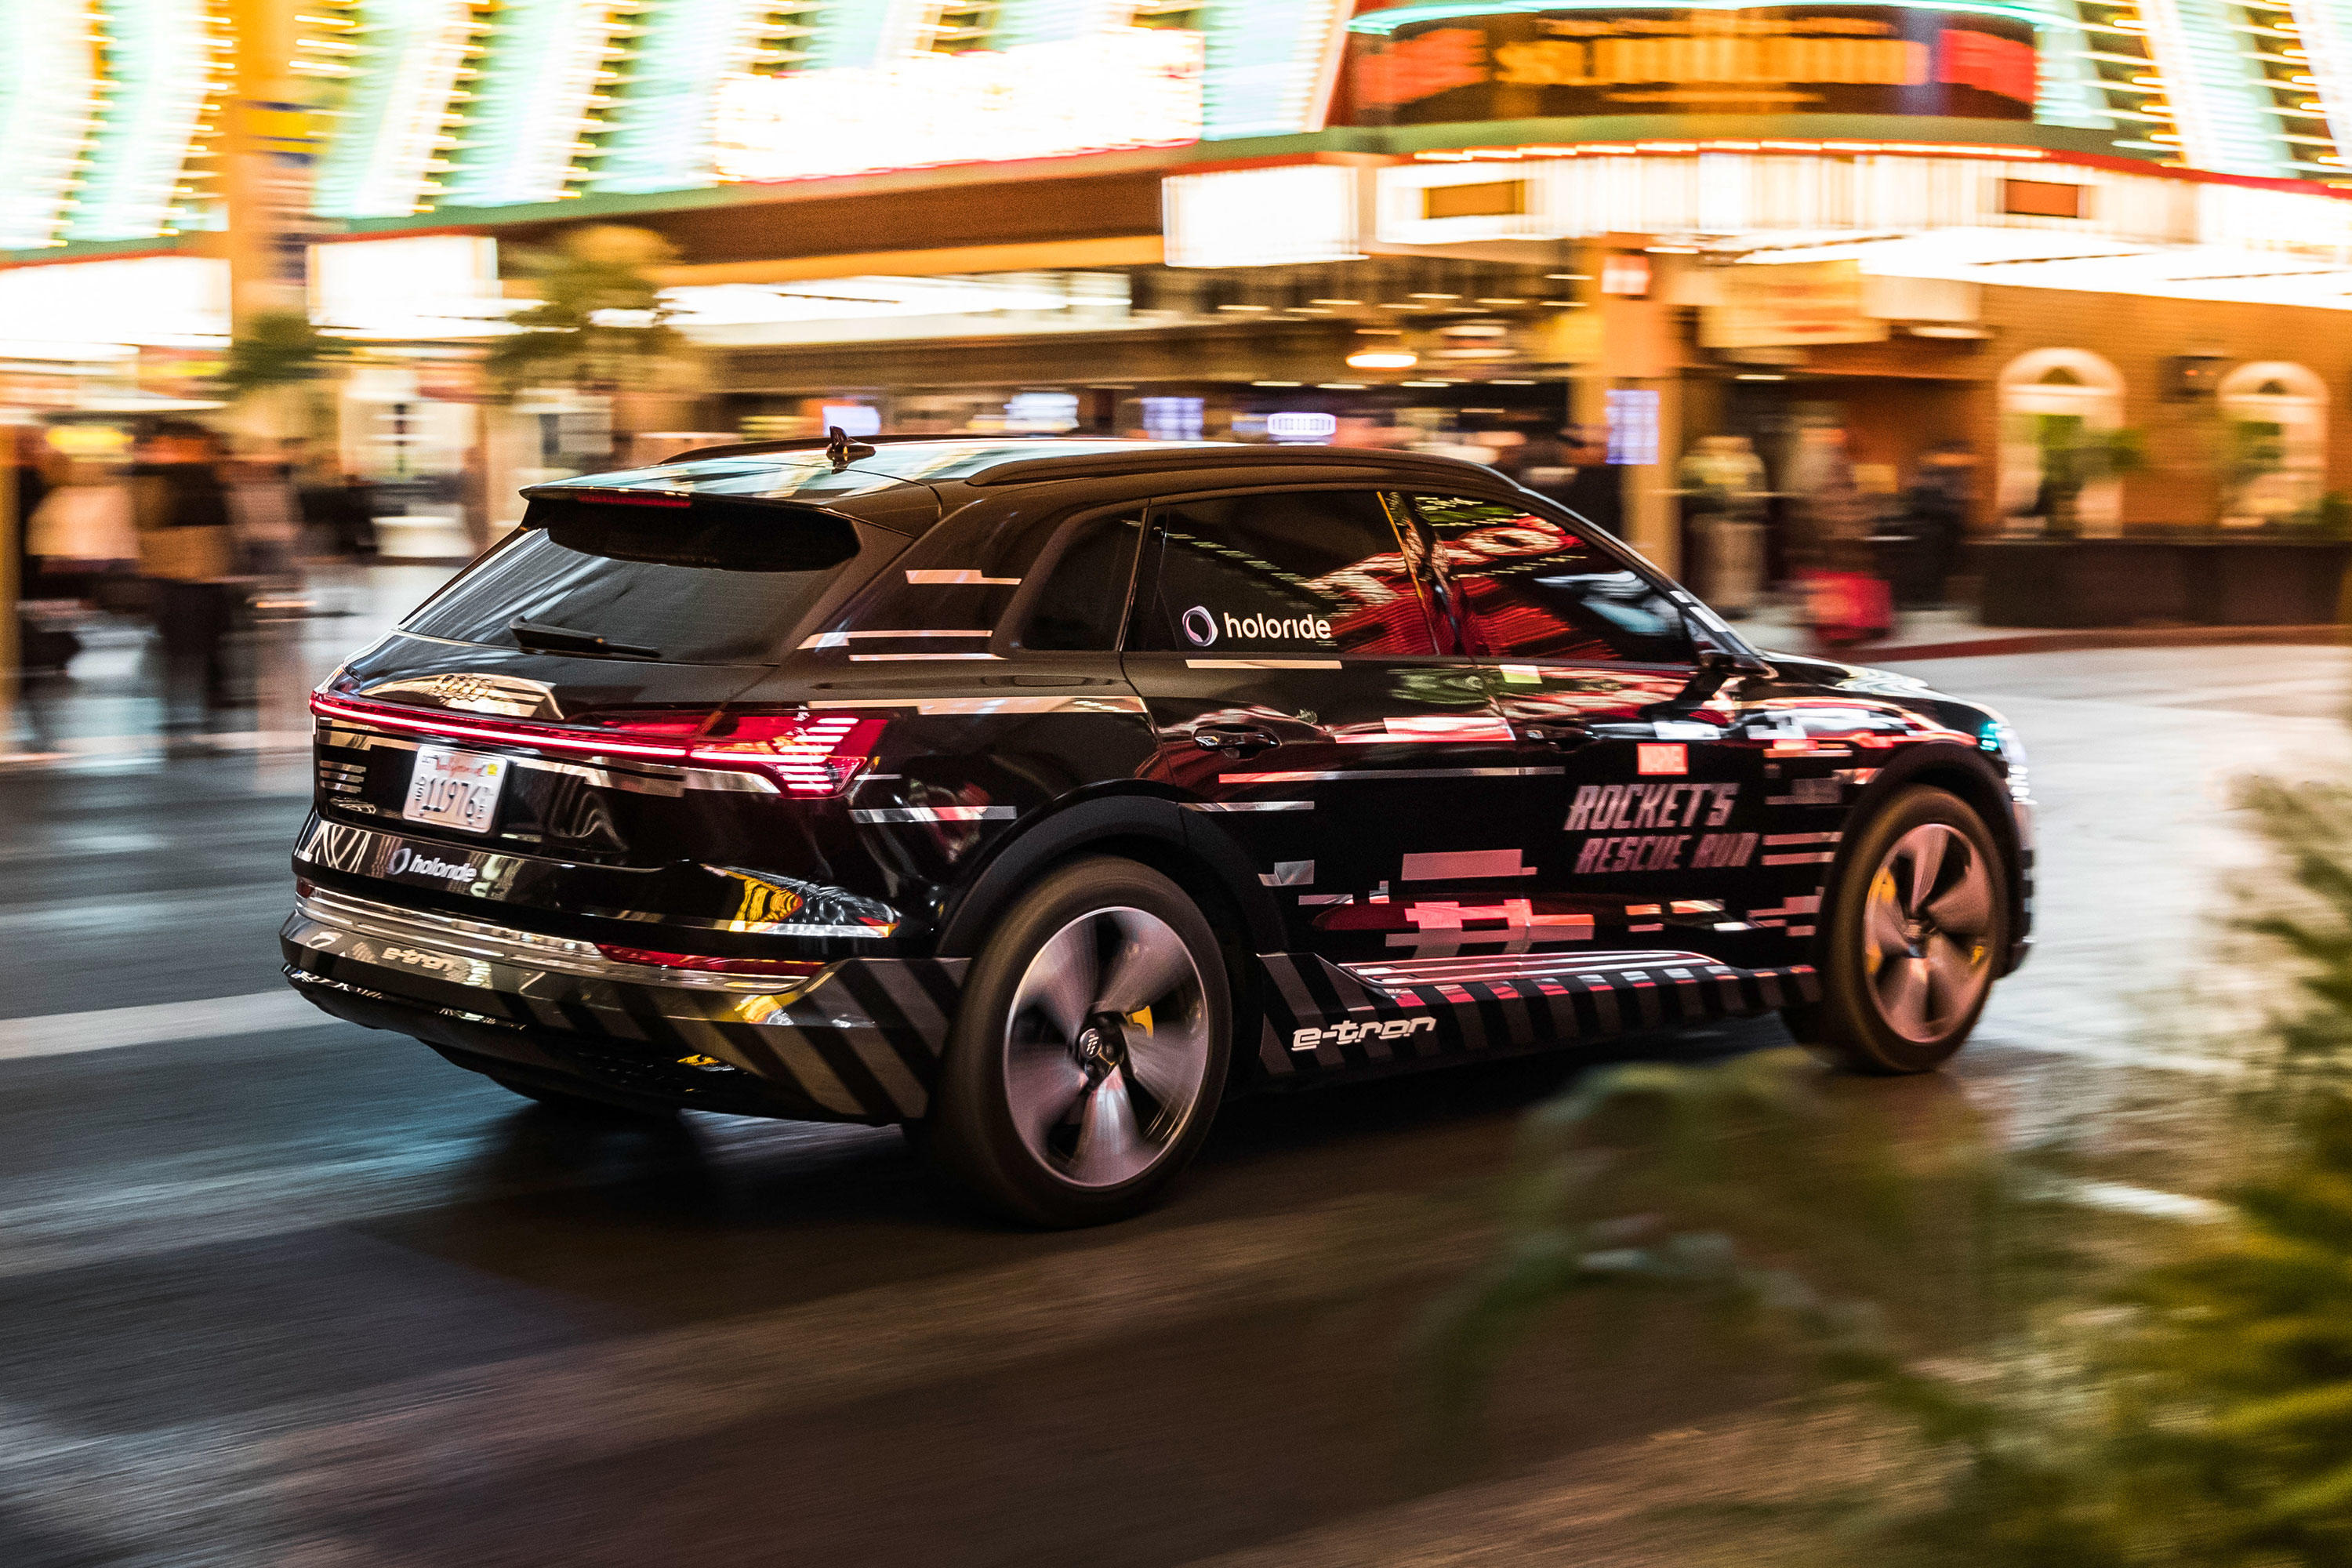 Audi and Disney's Holoride demonstration